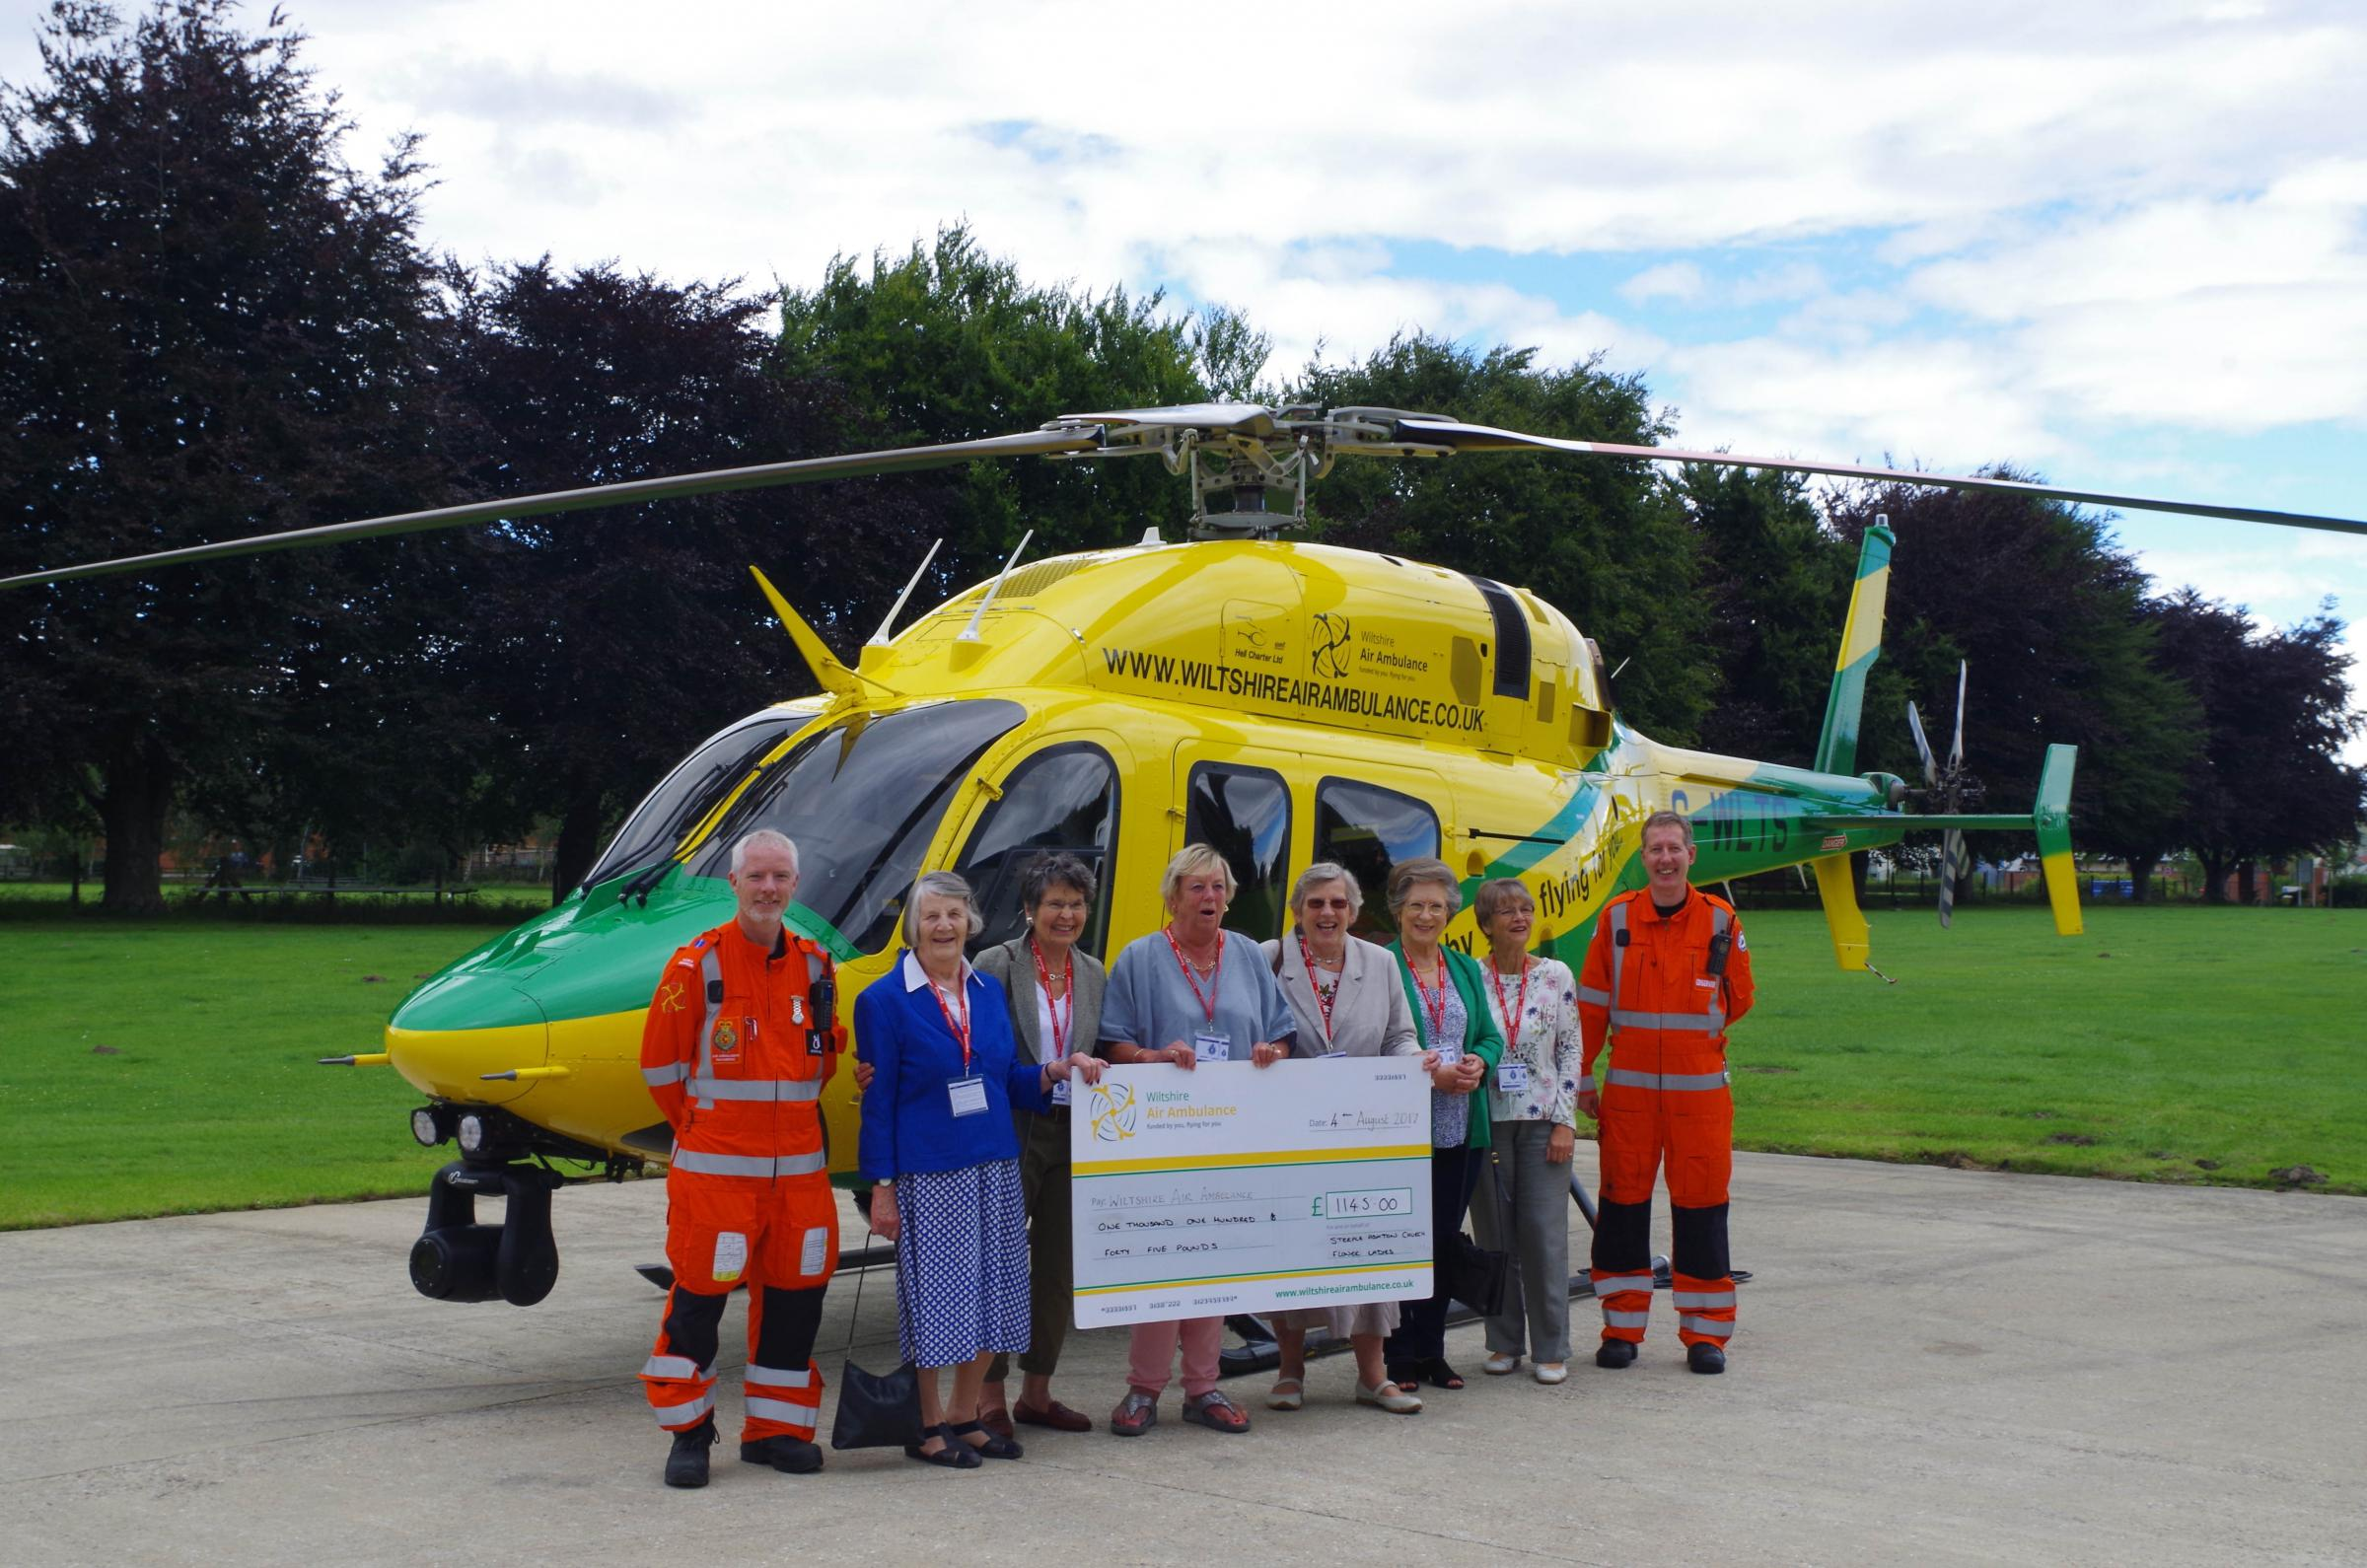 The Flower Ladies of St Mary's Church, Steeple Ashton present the cheque to Wiltshire Air Ambulance staff